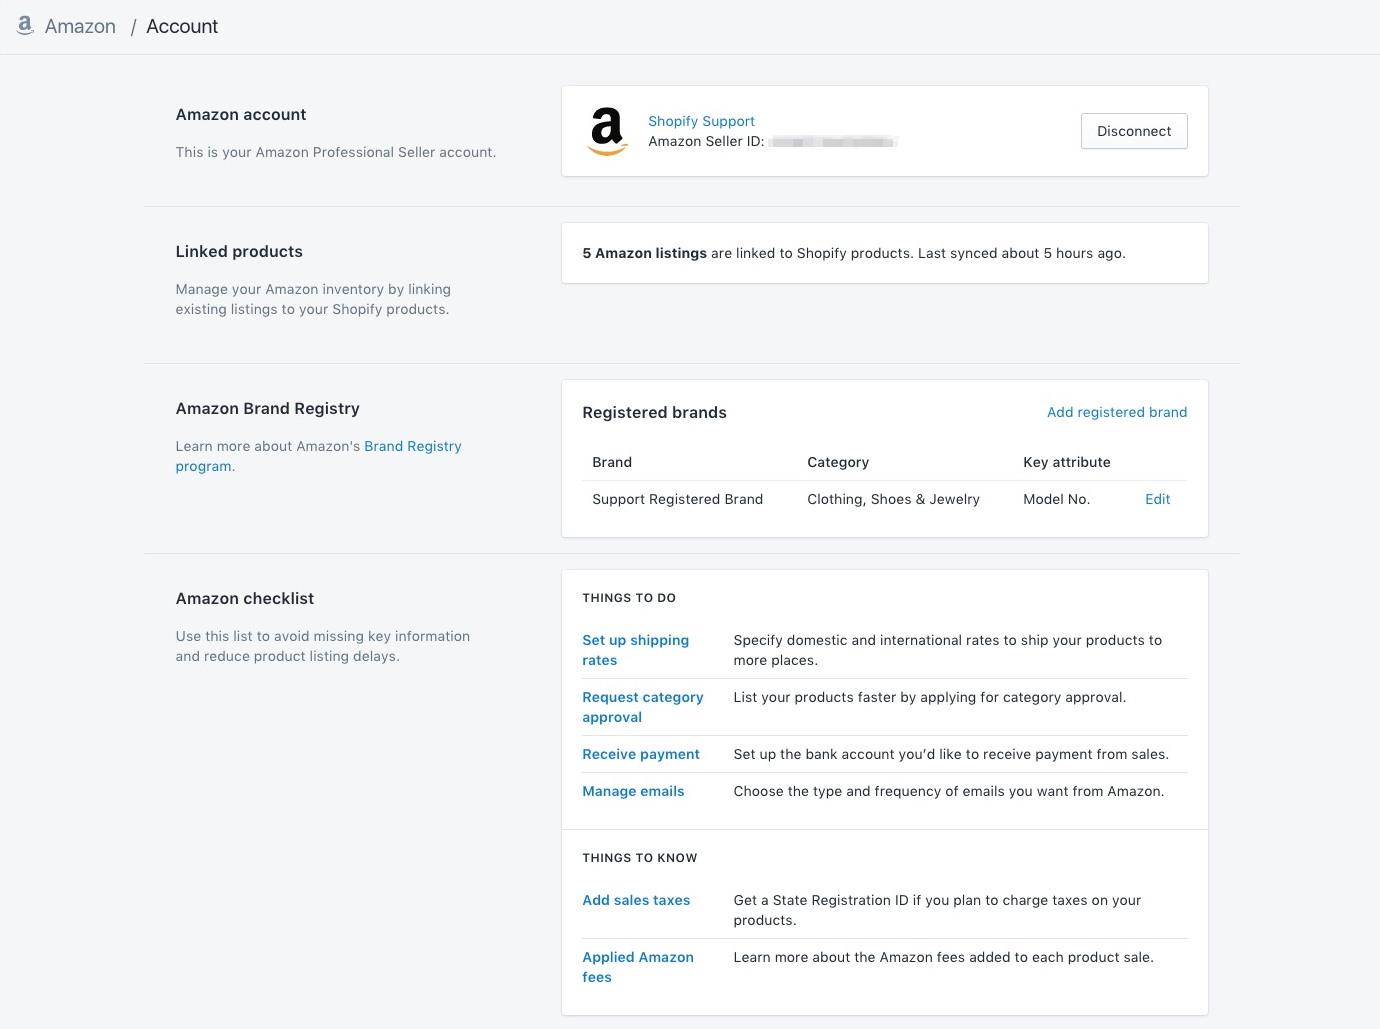 A connected account through Shopify's multi-channel ecommerce software Amazon